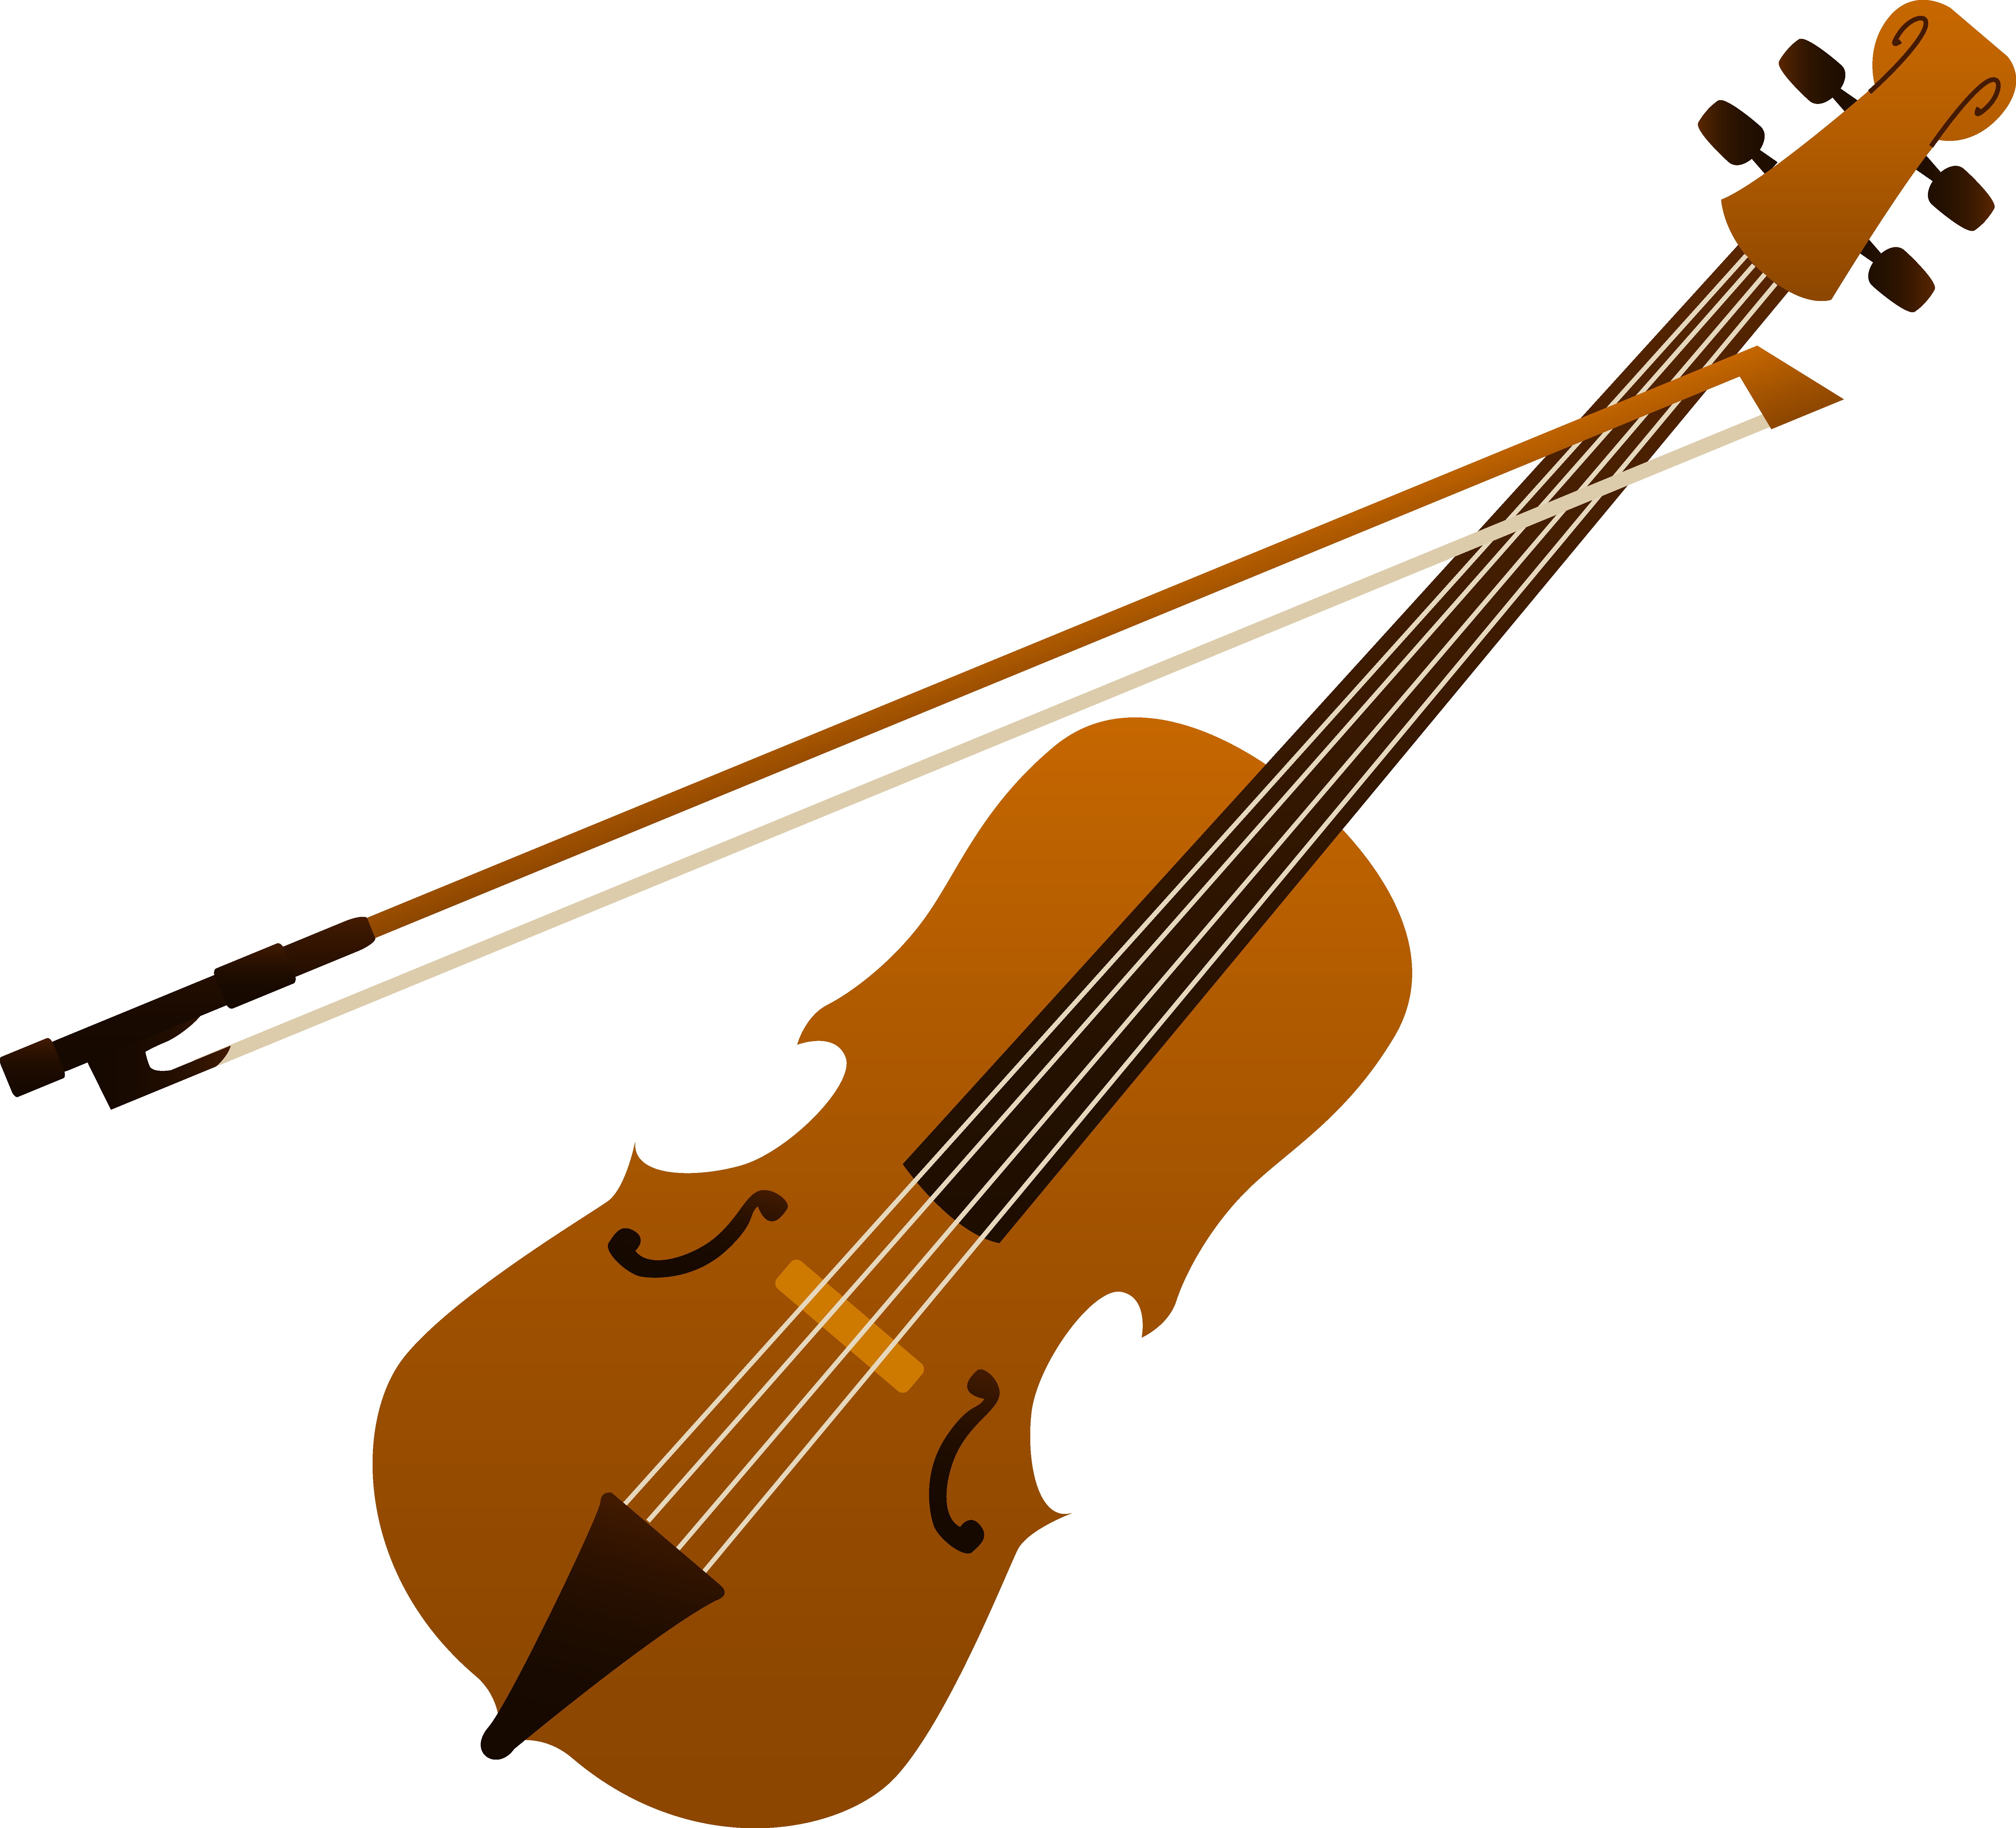 orchestra clipart colorful